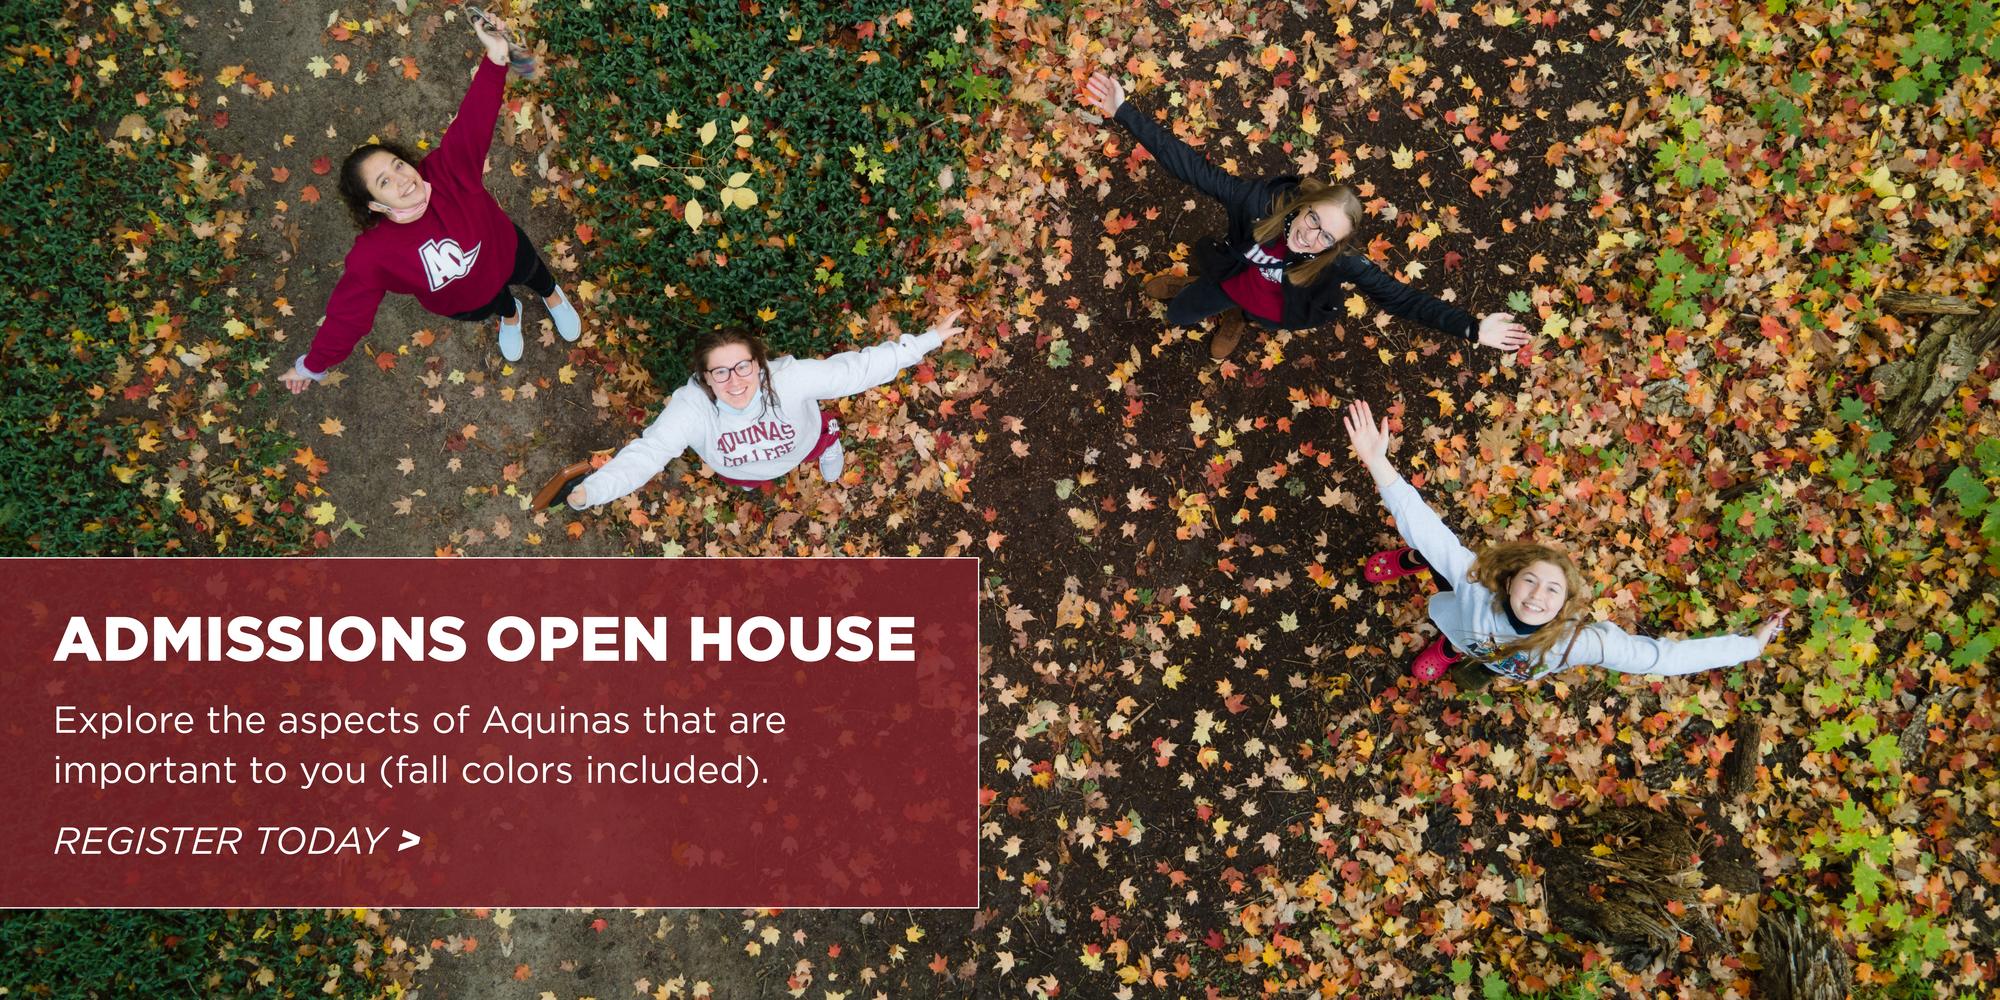 Four students looking up among fall leaves. Admissions Open House. Explore the aspects of Aquinas College that are important to you (fall colors included). Register Now.